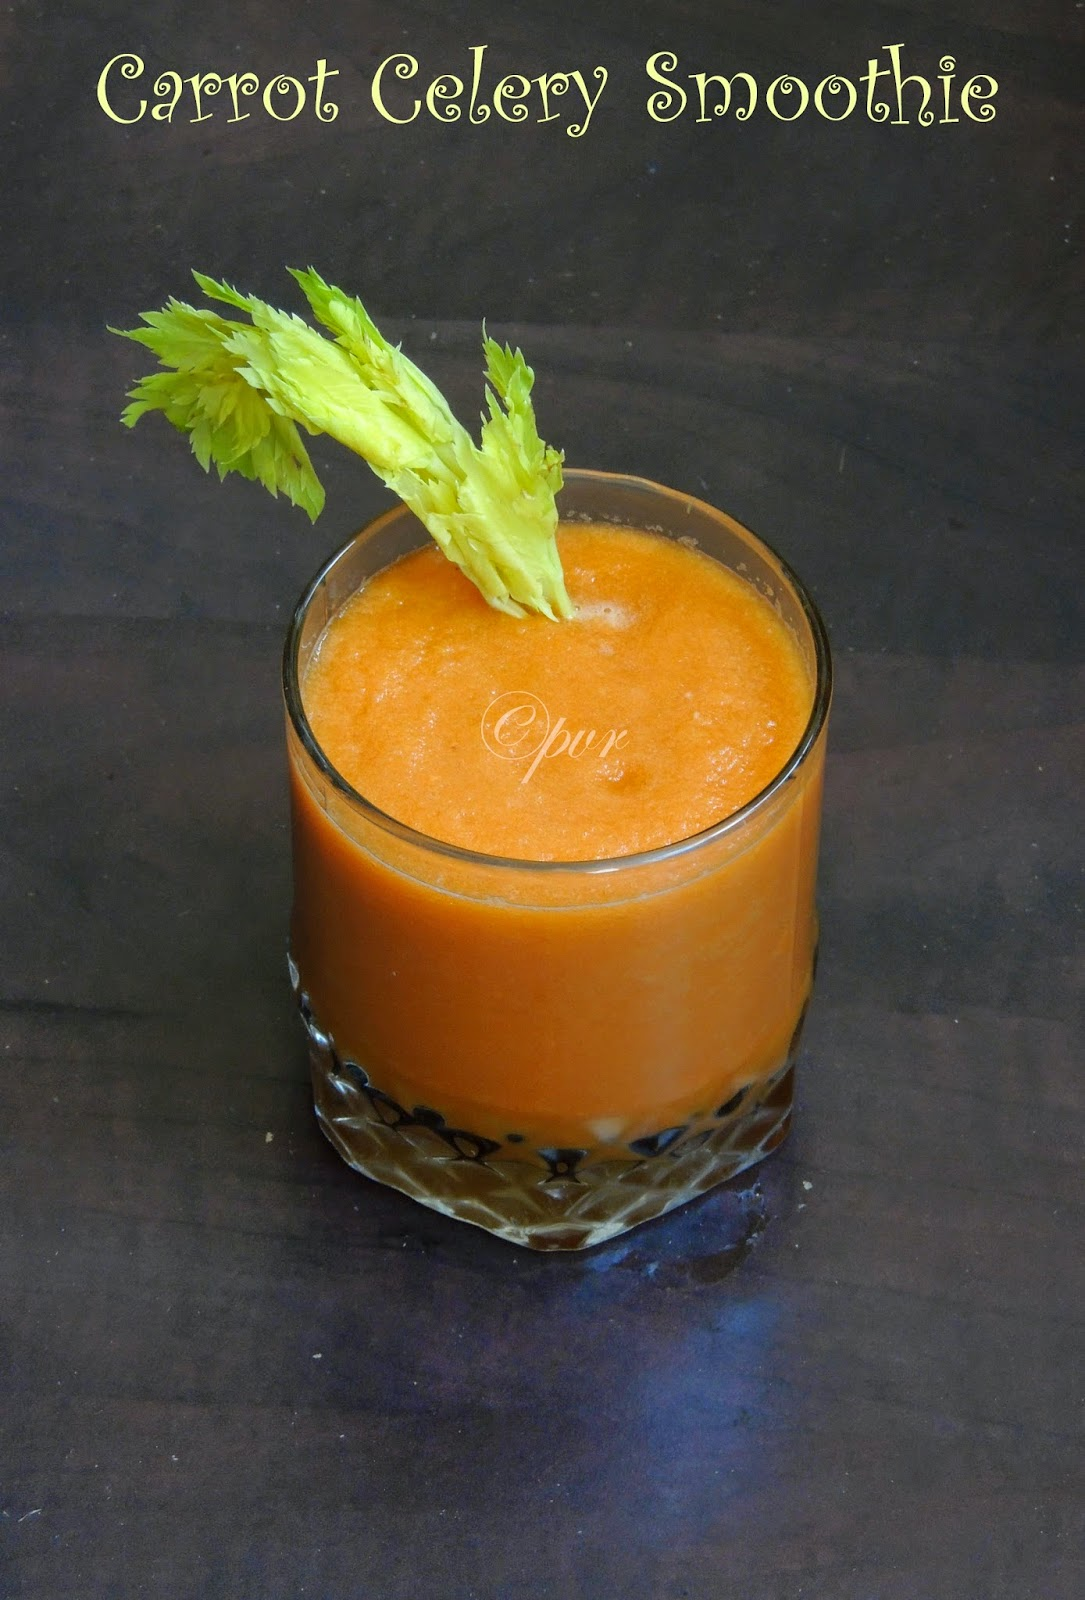 Carrot celery sweet smoothie, healthy raw vegetable smoothie